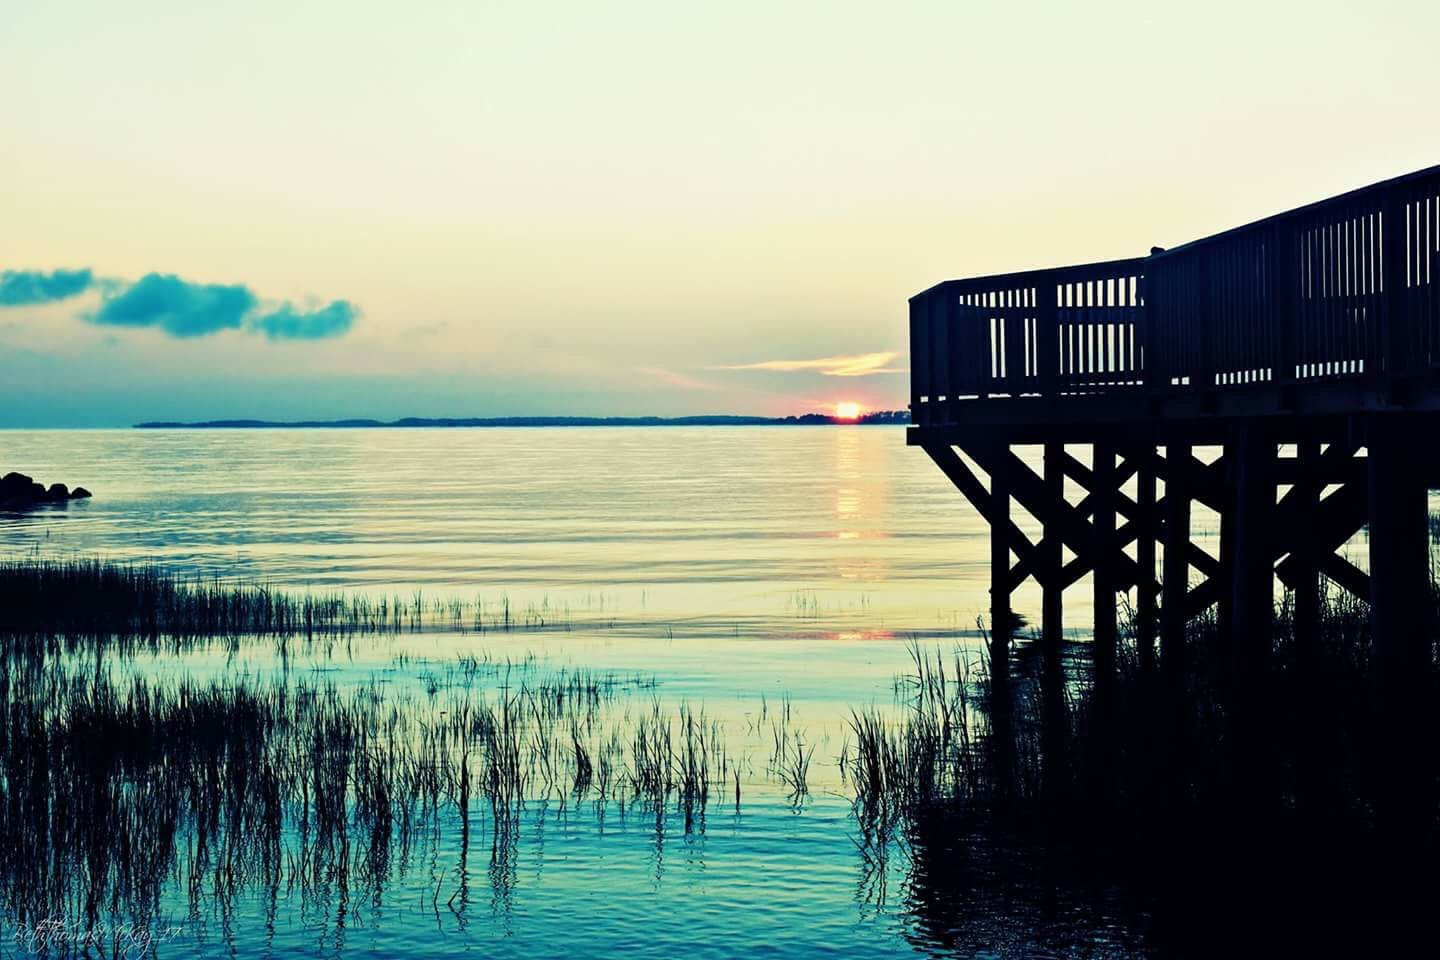 Our dock at sunrise and high tide. Many thanks to our neighbor Carol for catching this amazing sunrise picture!